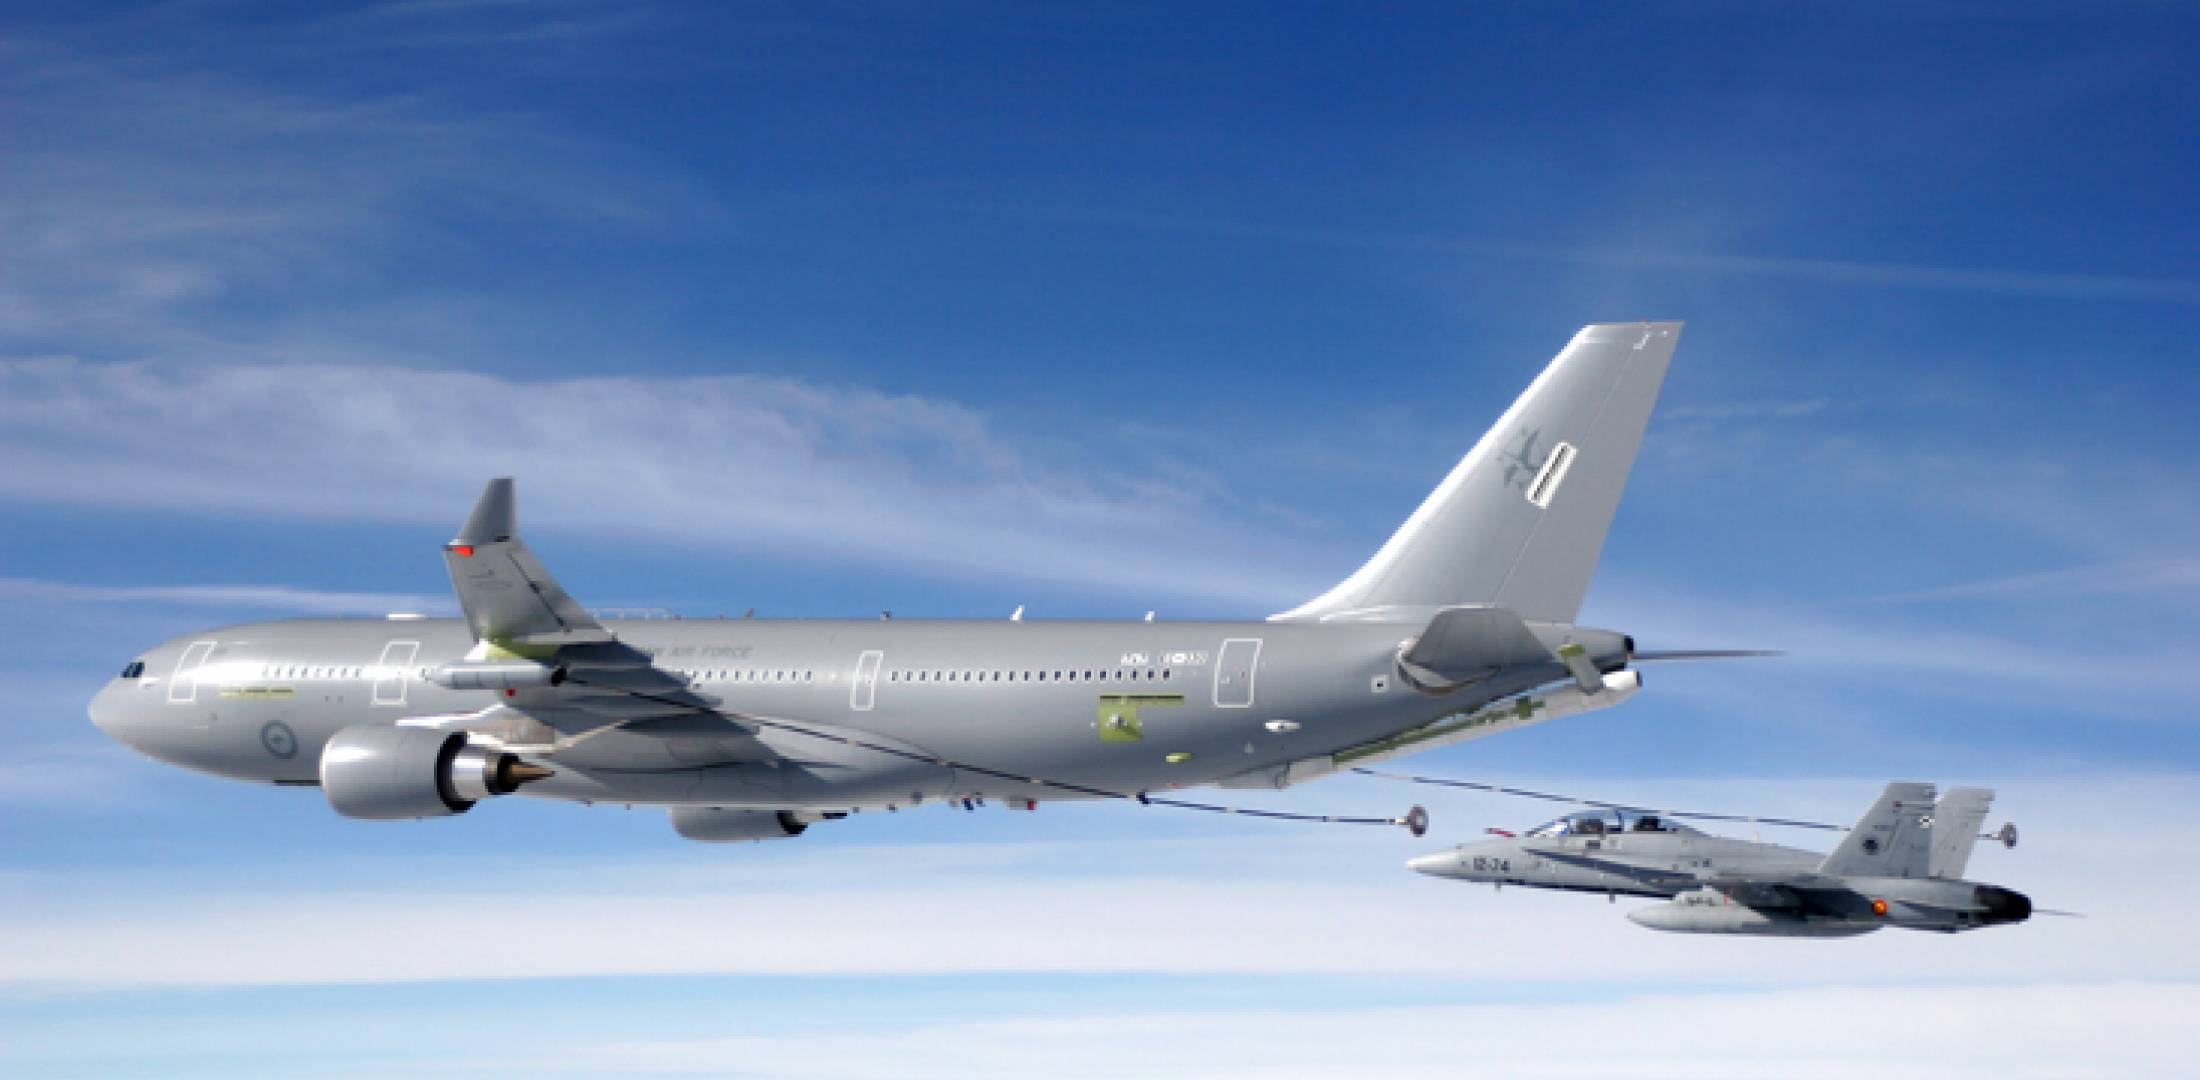 Airbus's A330MRTT appears to be poised to win the long-running battle to supp...